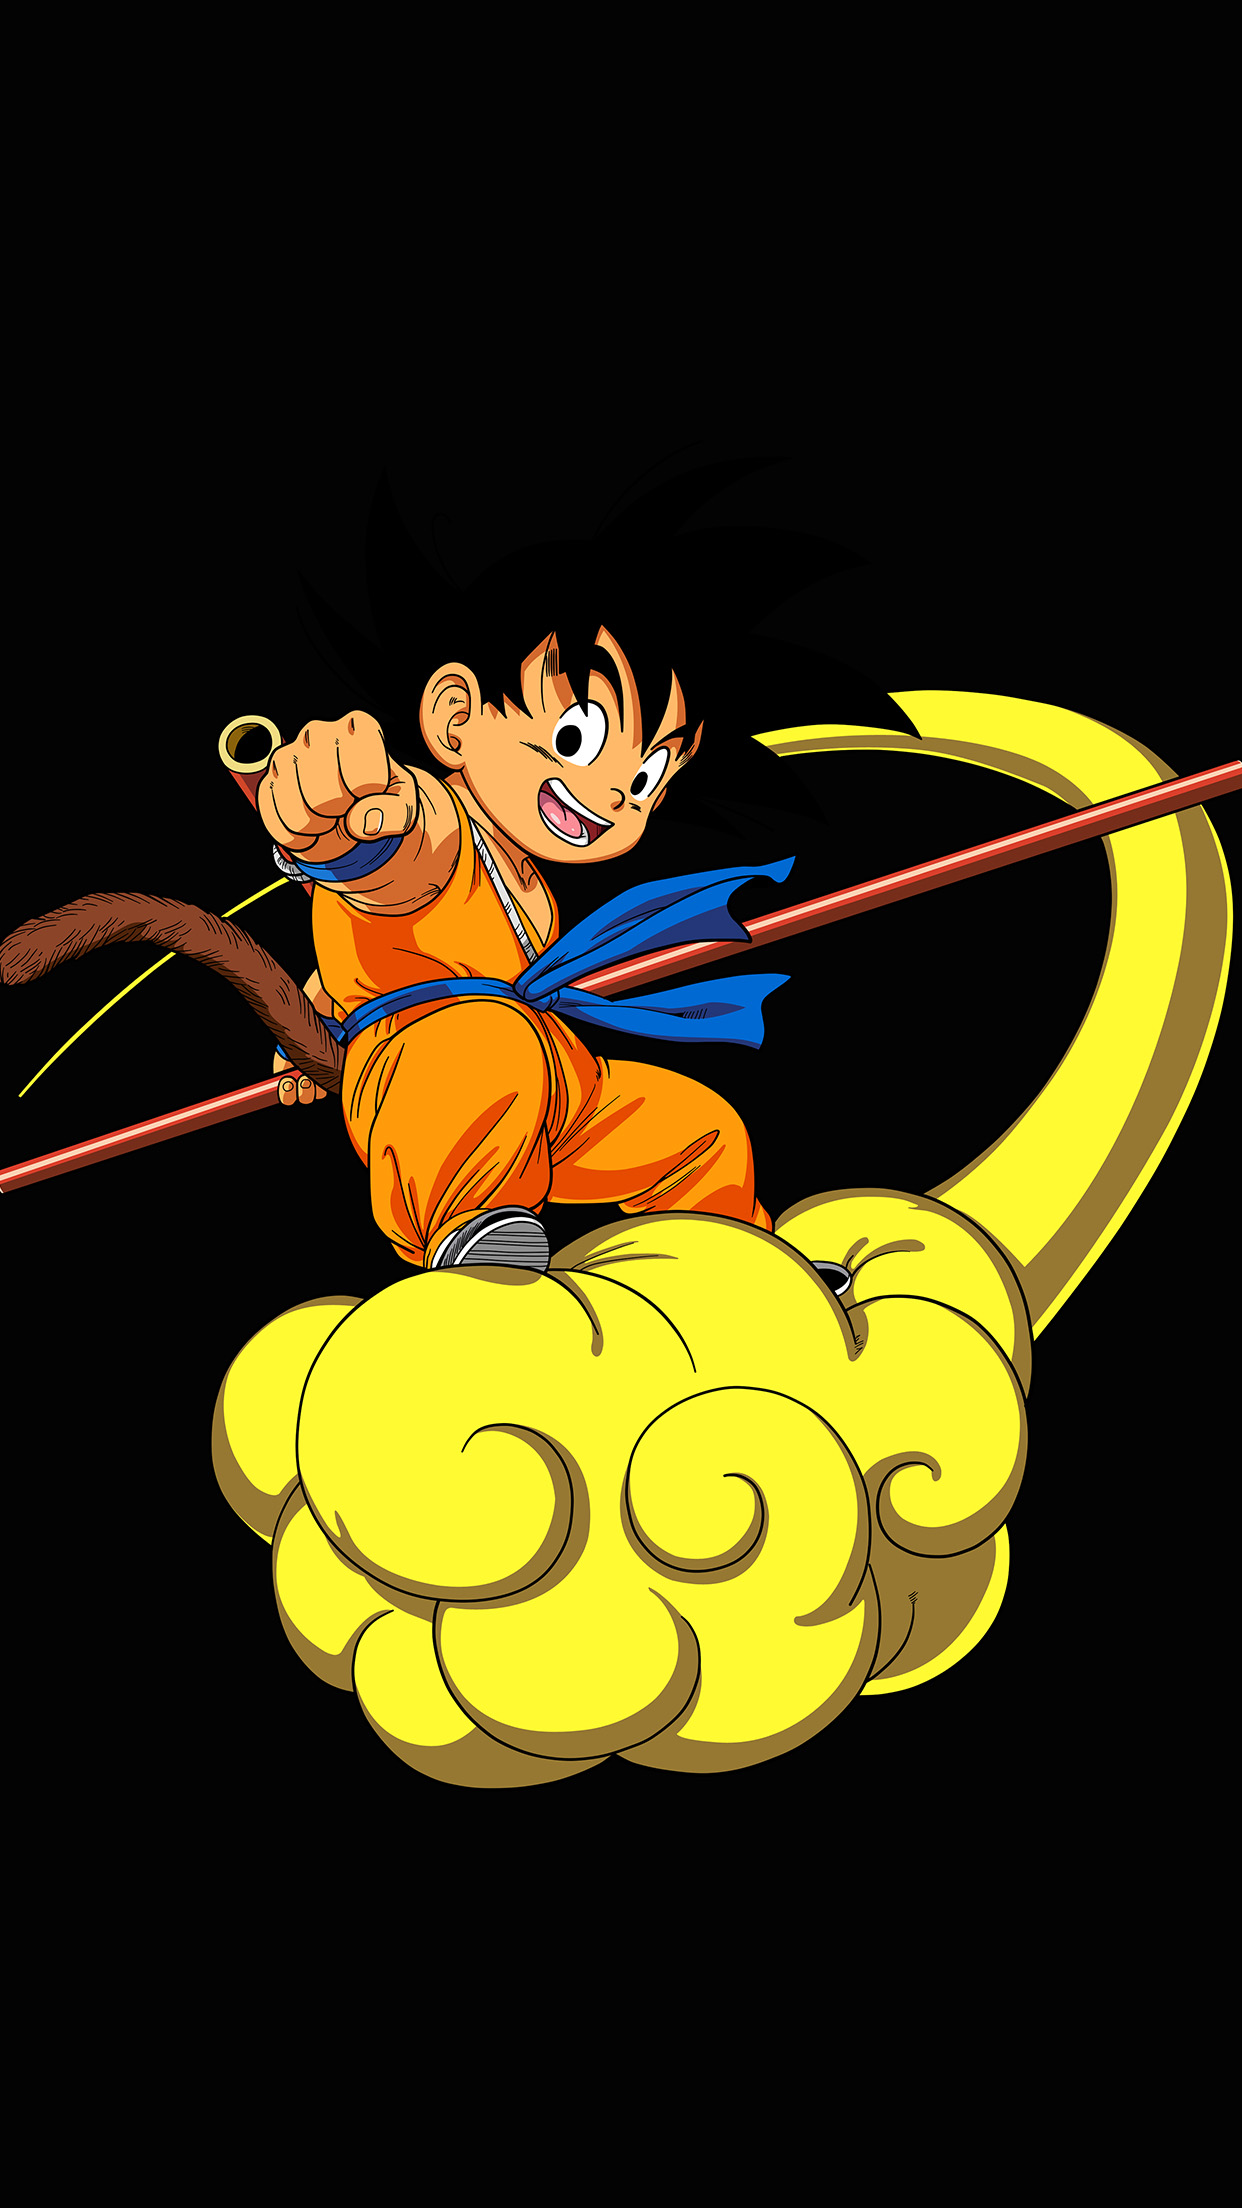 Iphone7papers Ap05 Dragonball Goku Cloud Fly Anime Art Illust